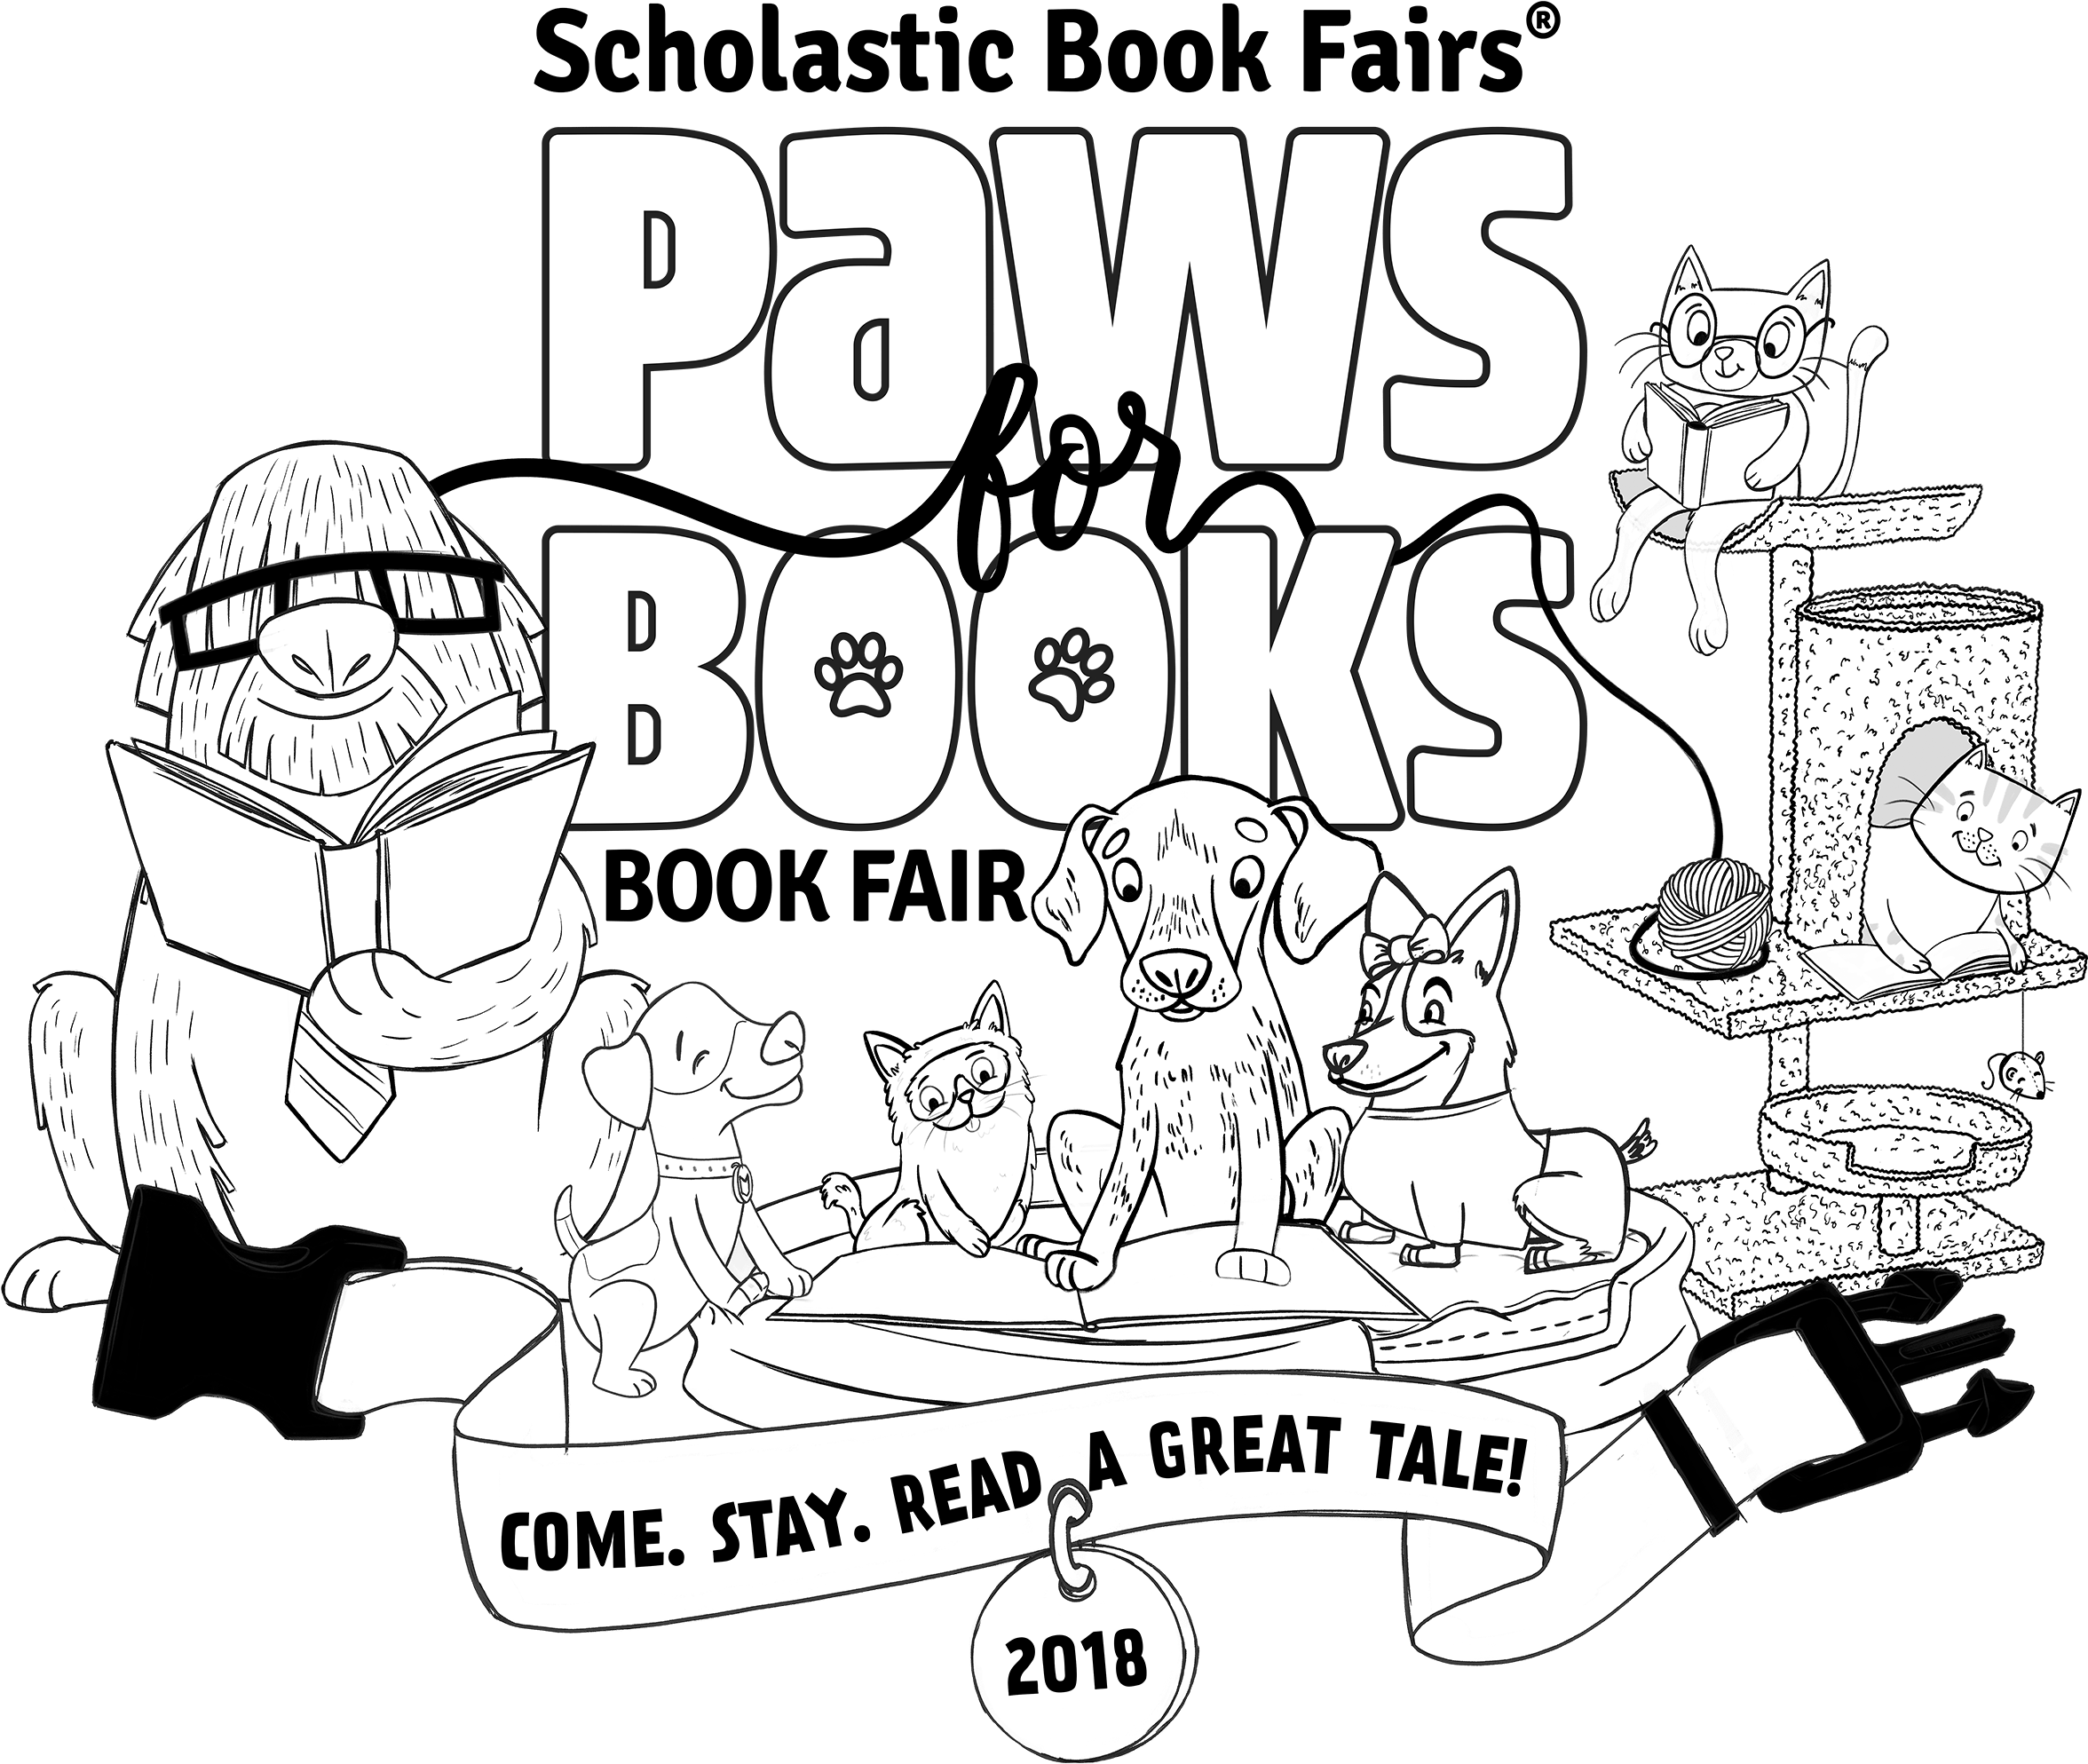 Paws clipart book clipart, Paws book Transparent FREE for